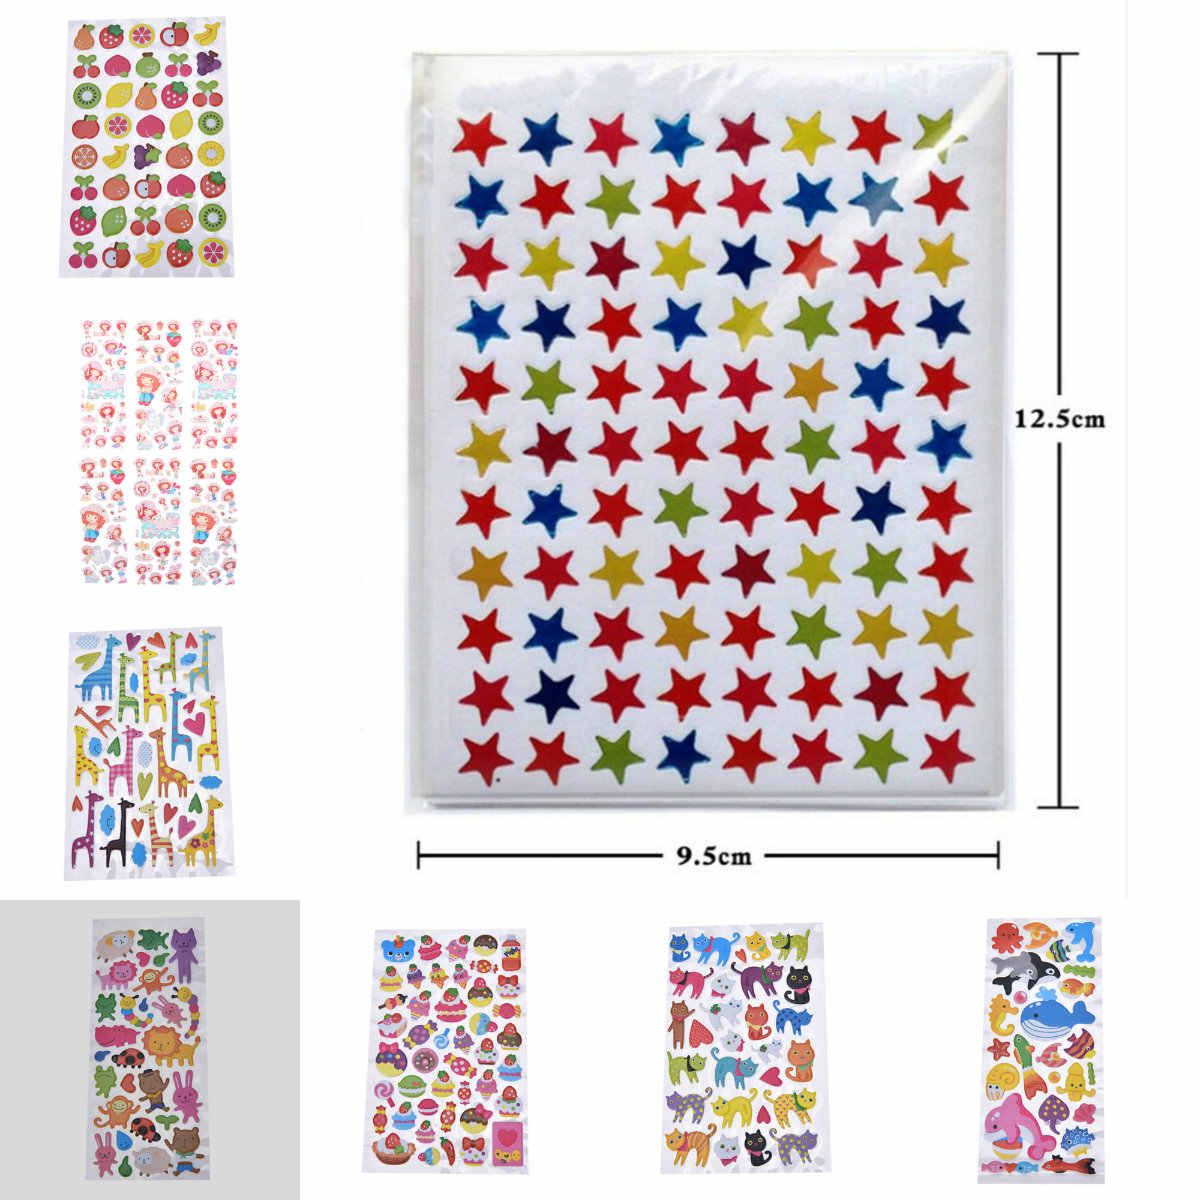 10 Sheets Star Shape Stickers Labels For School Children Cute Teacher Reward Sticker Gift Kid Hand Body Sticker Toys